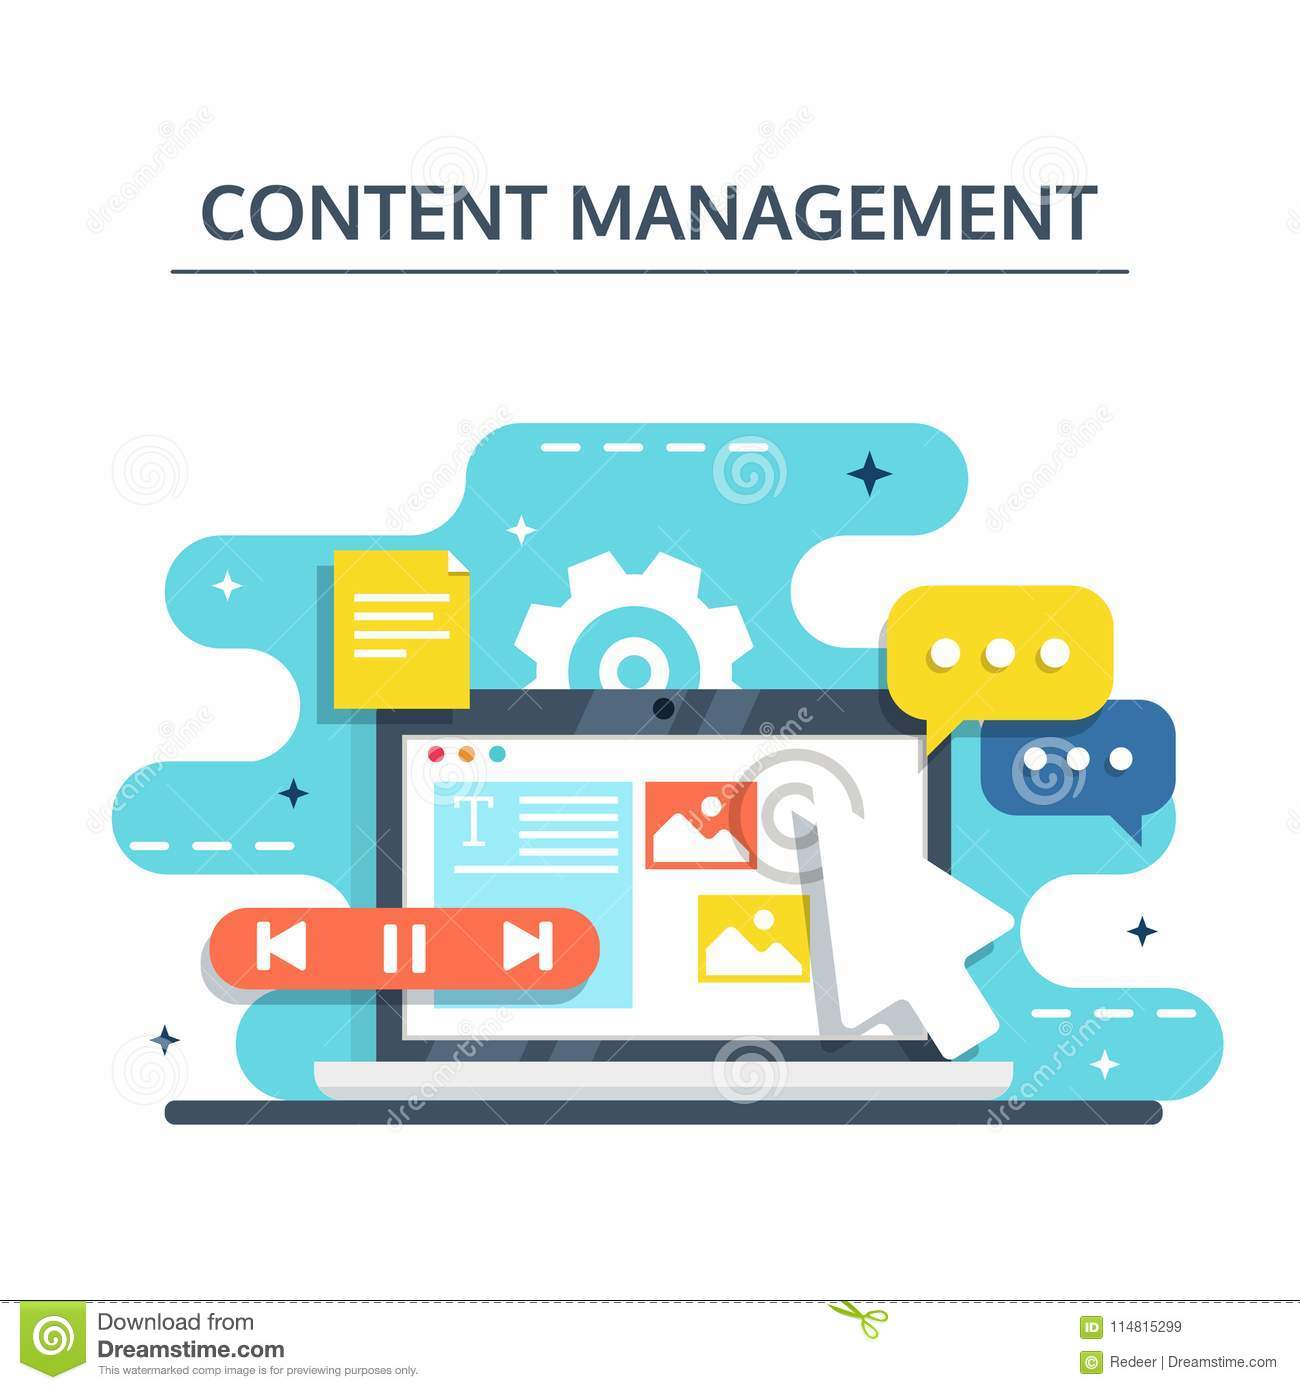 Content Management and Blogging concept in flat design. Creating, marketing and sharing of digital - vector illustration